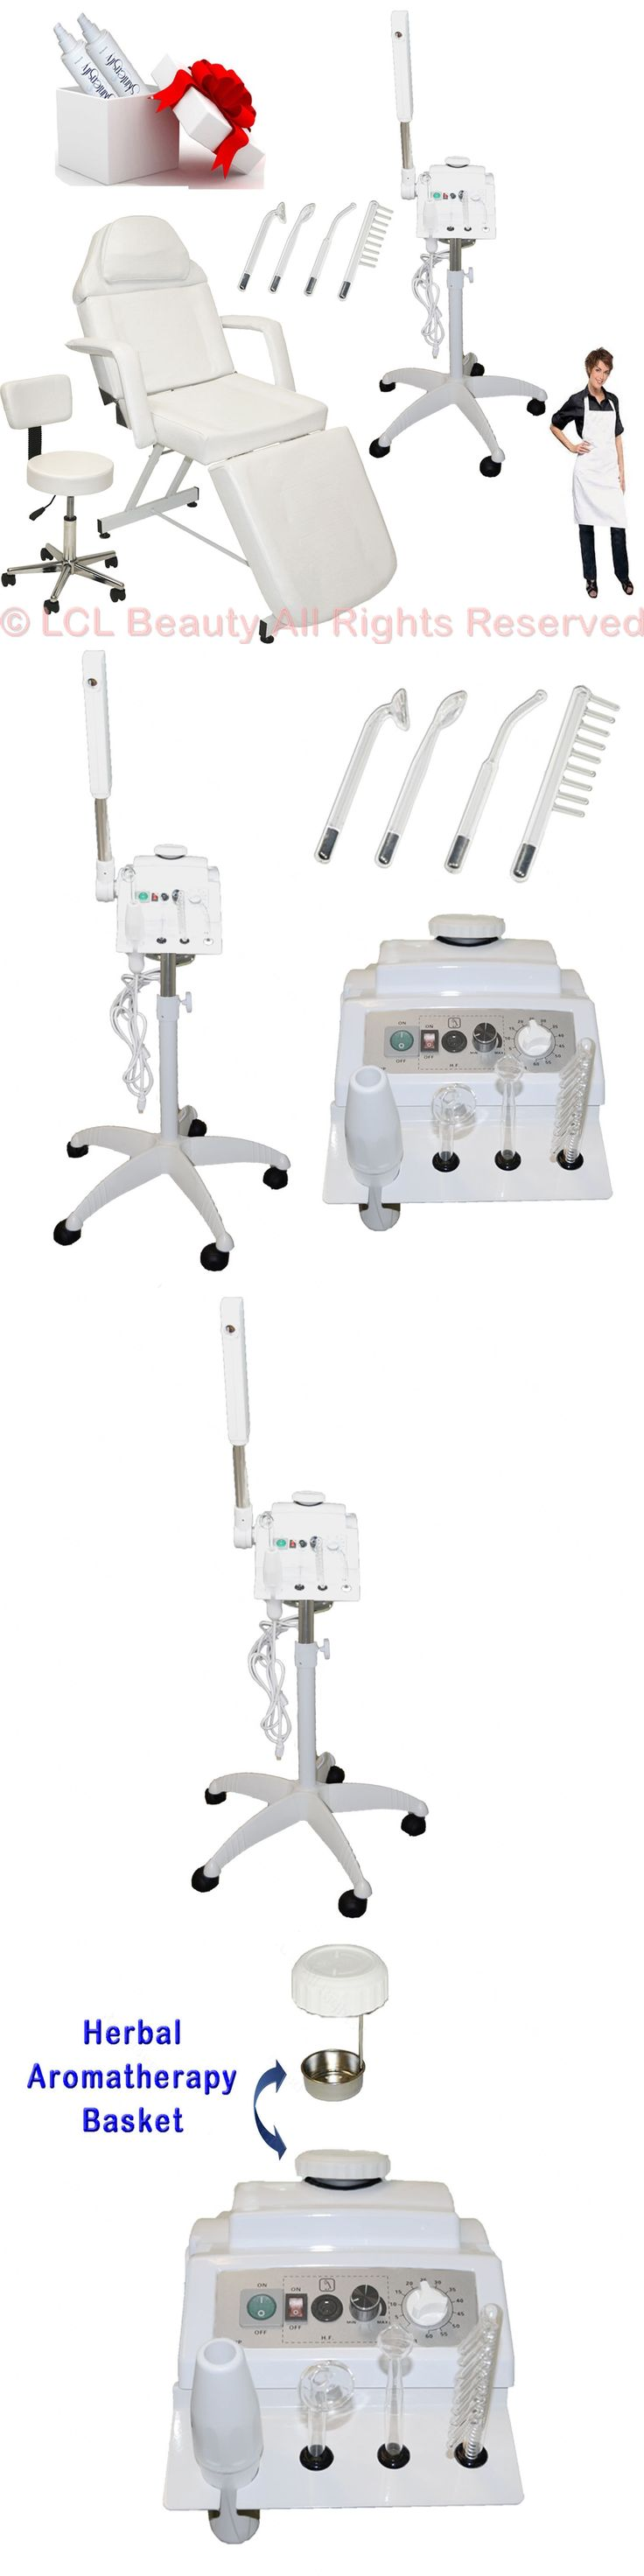 Professional Facial Machines: 2 In 1 Facial Steamer High Frequency Machine Adjustable Bed Salon Spa Equipment BUY IT NOW ONLY: $348.88